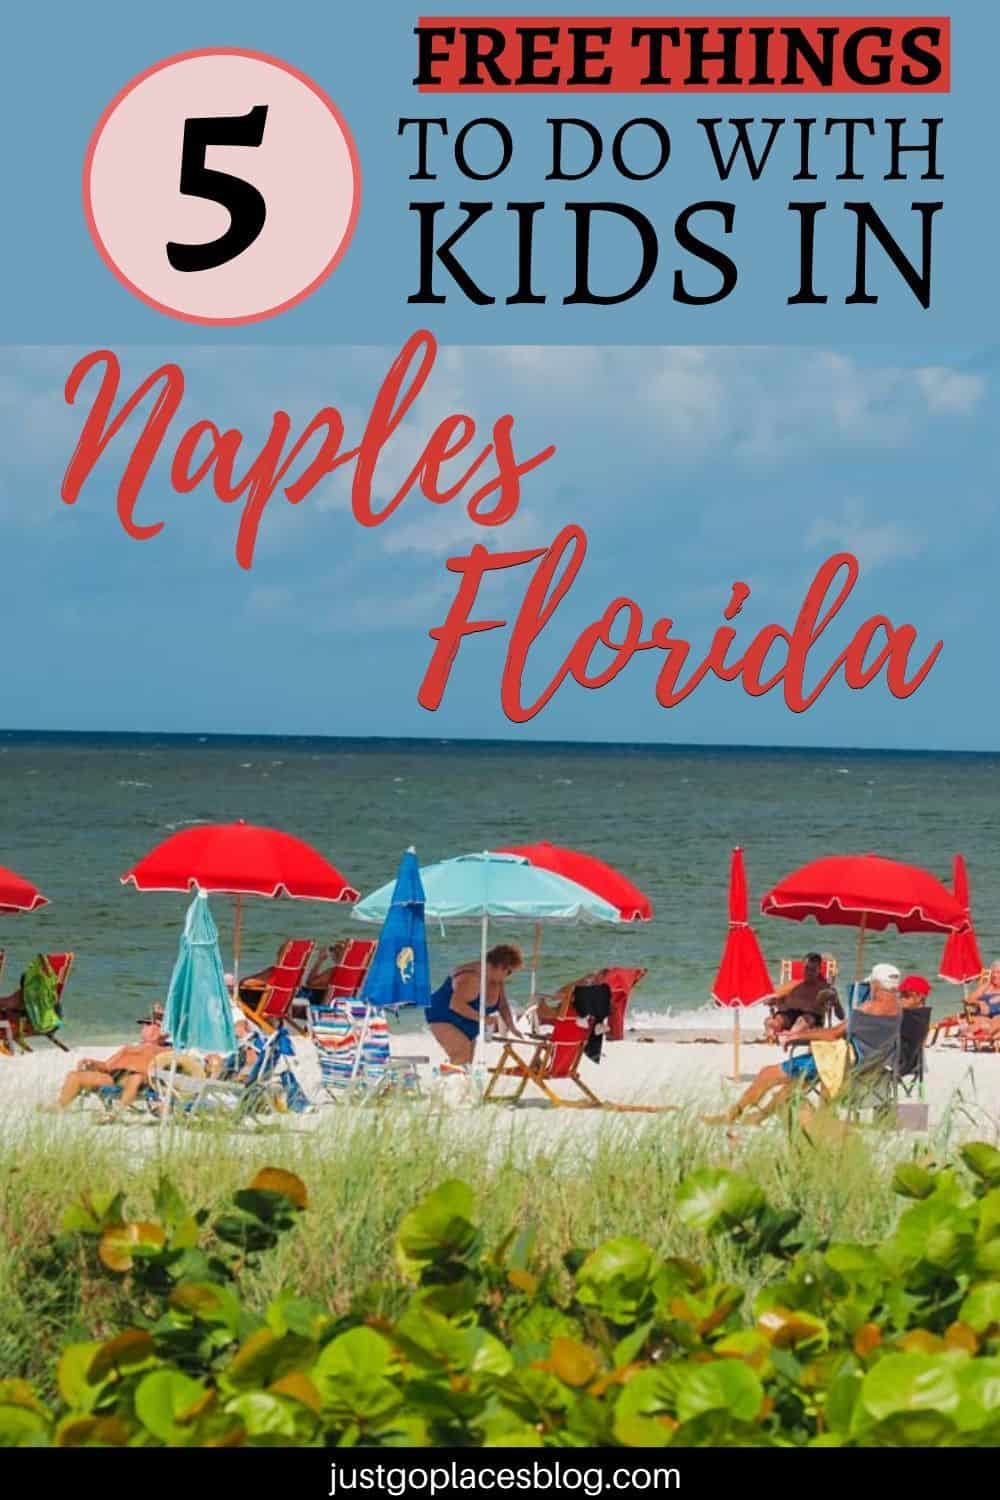 Free things to do in Naples Florida